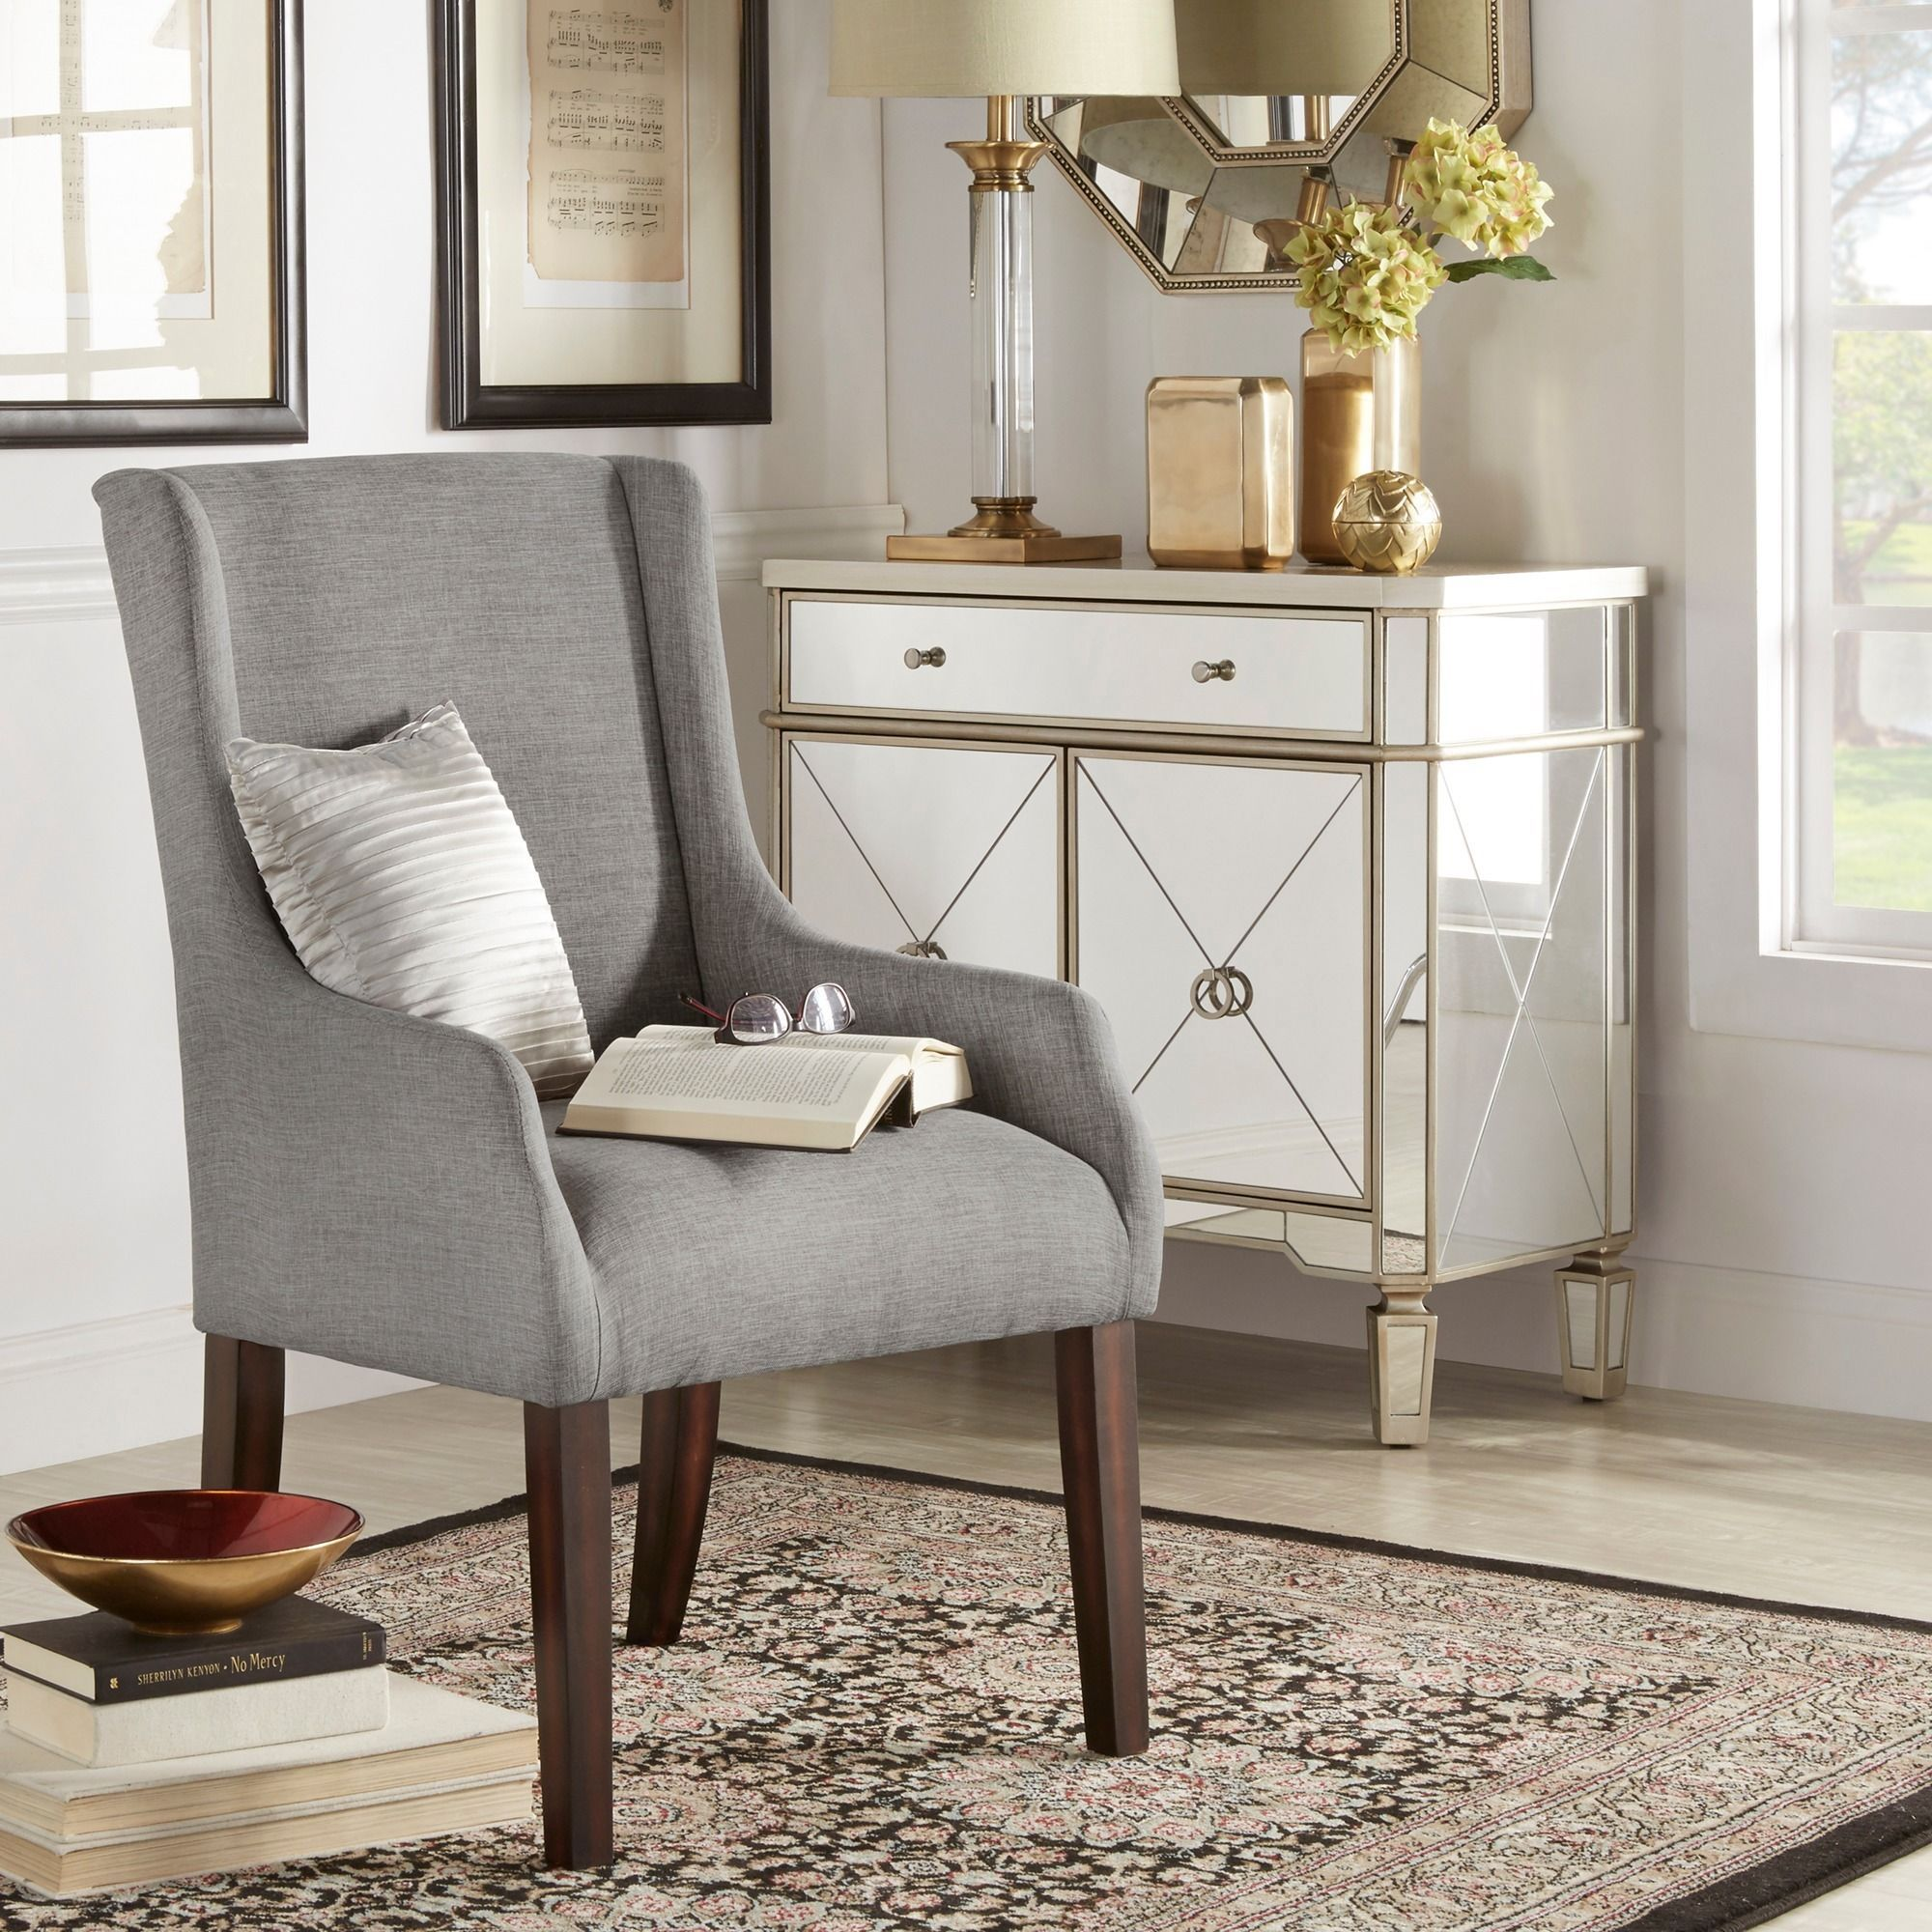 INSPIRE Q Jourdan Linen Sloped Arm Hostess Chair | Overstock.com Shopping -  The Best